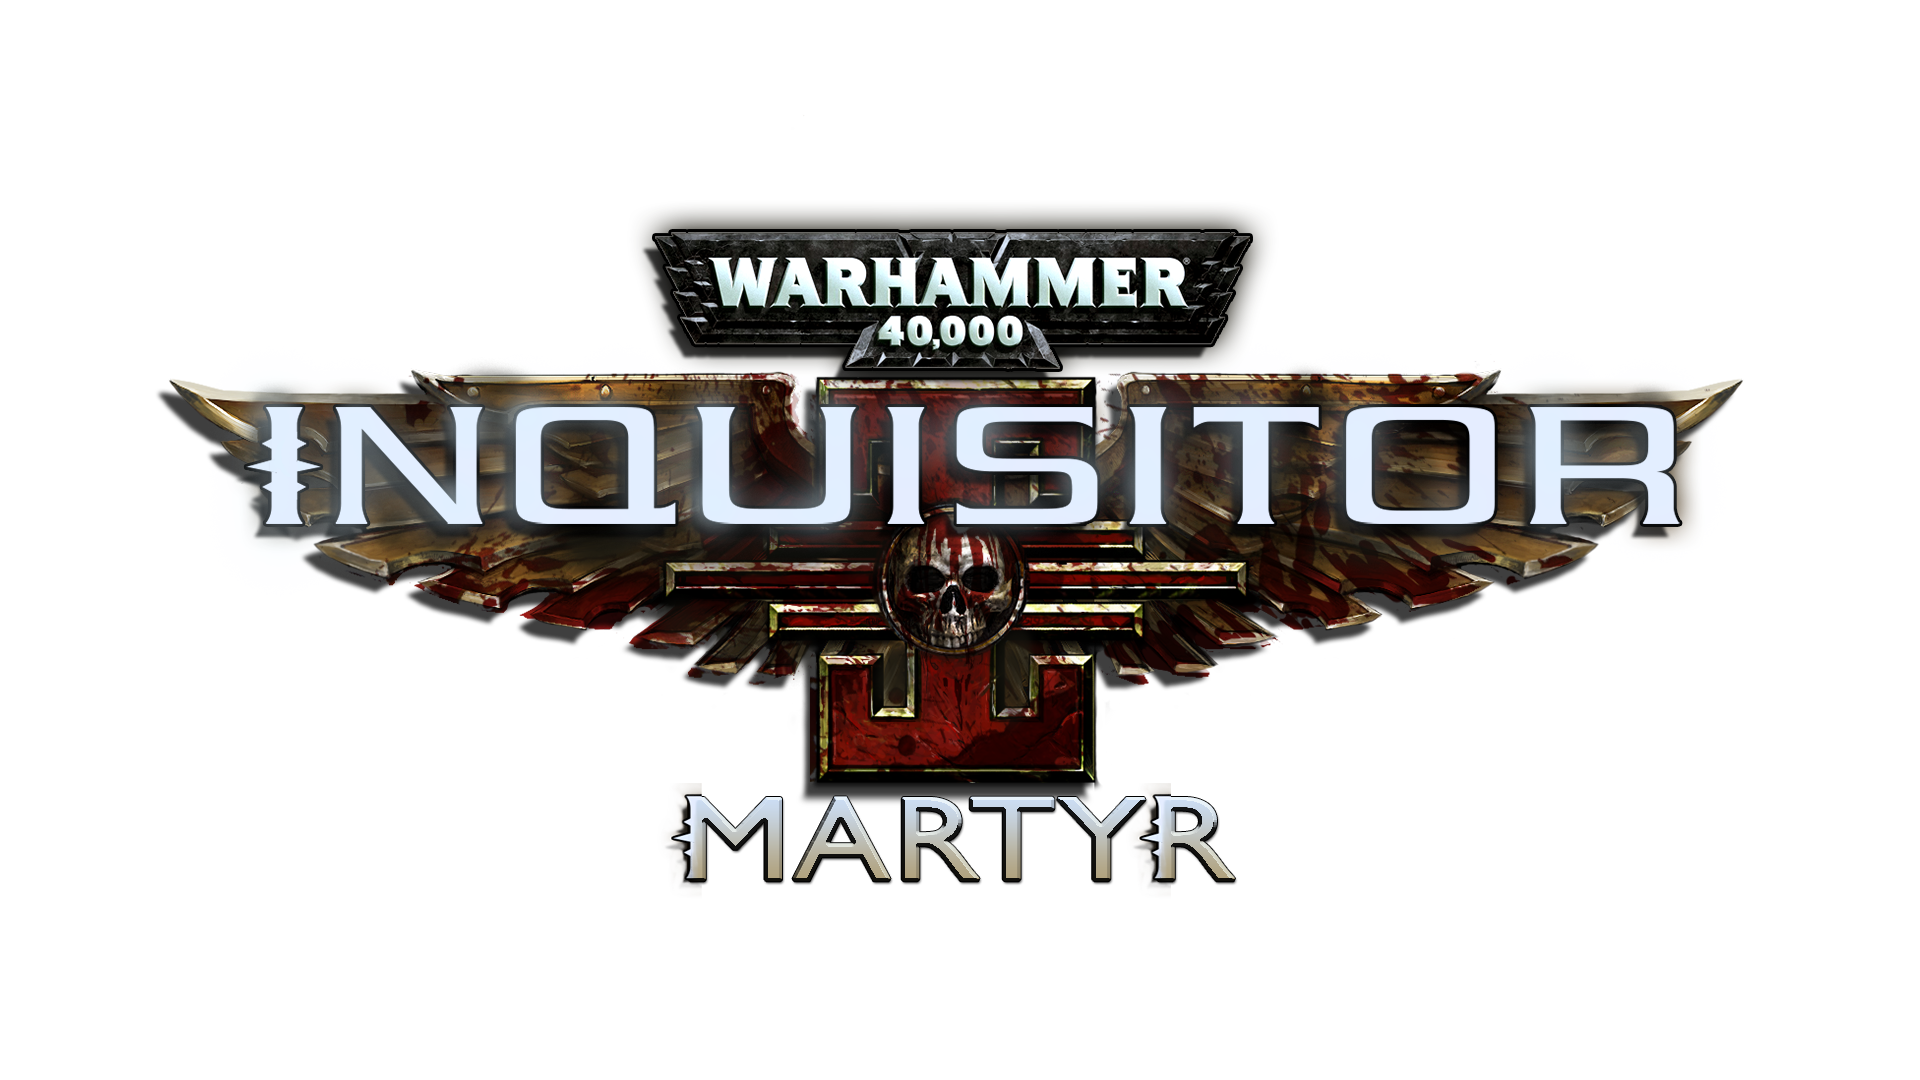 Warhammer 40000 Inquisitor - Martyr : Repoussé de quelques semaines !